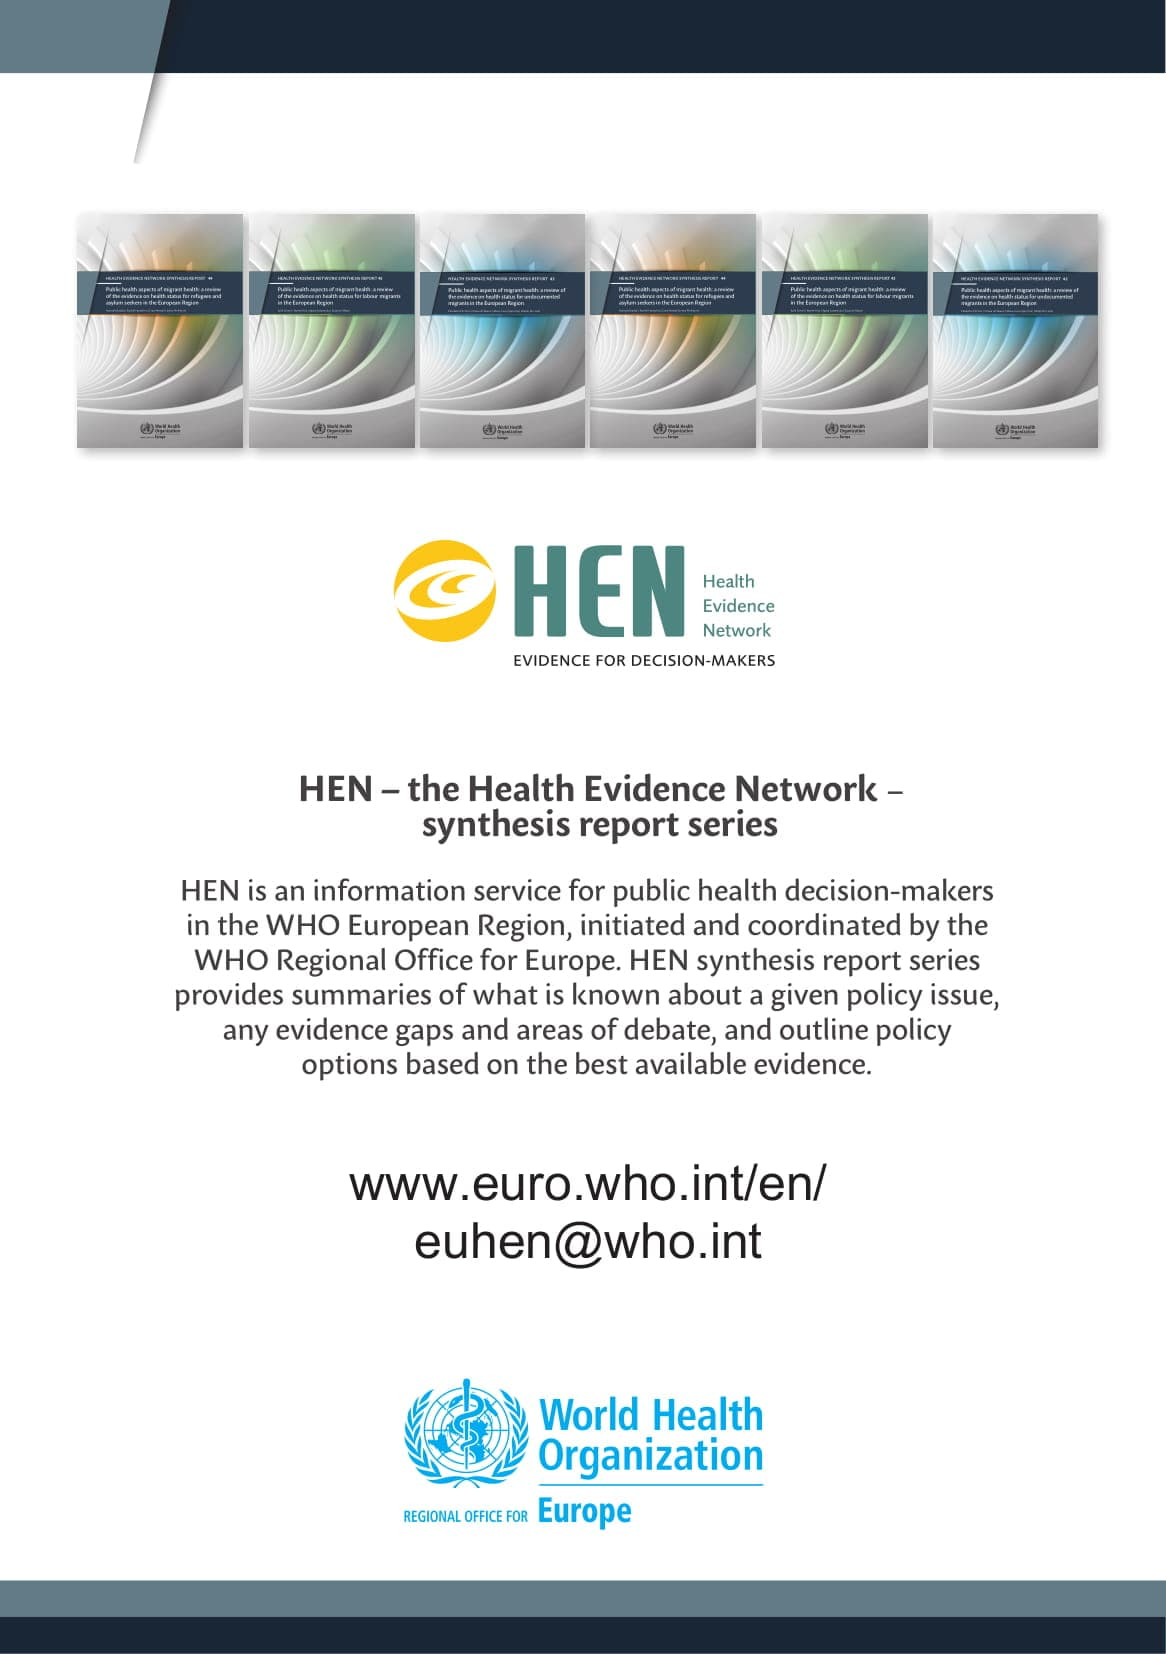 WHO Health Evidence Network synthesis reports